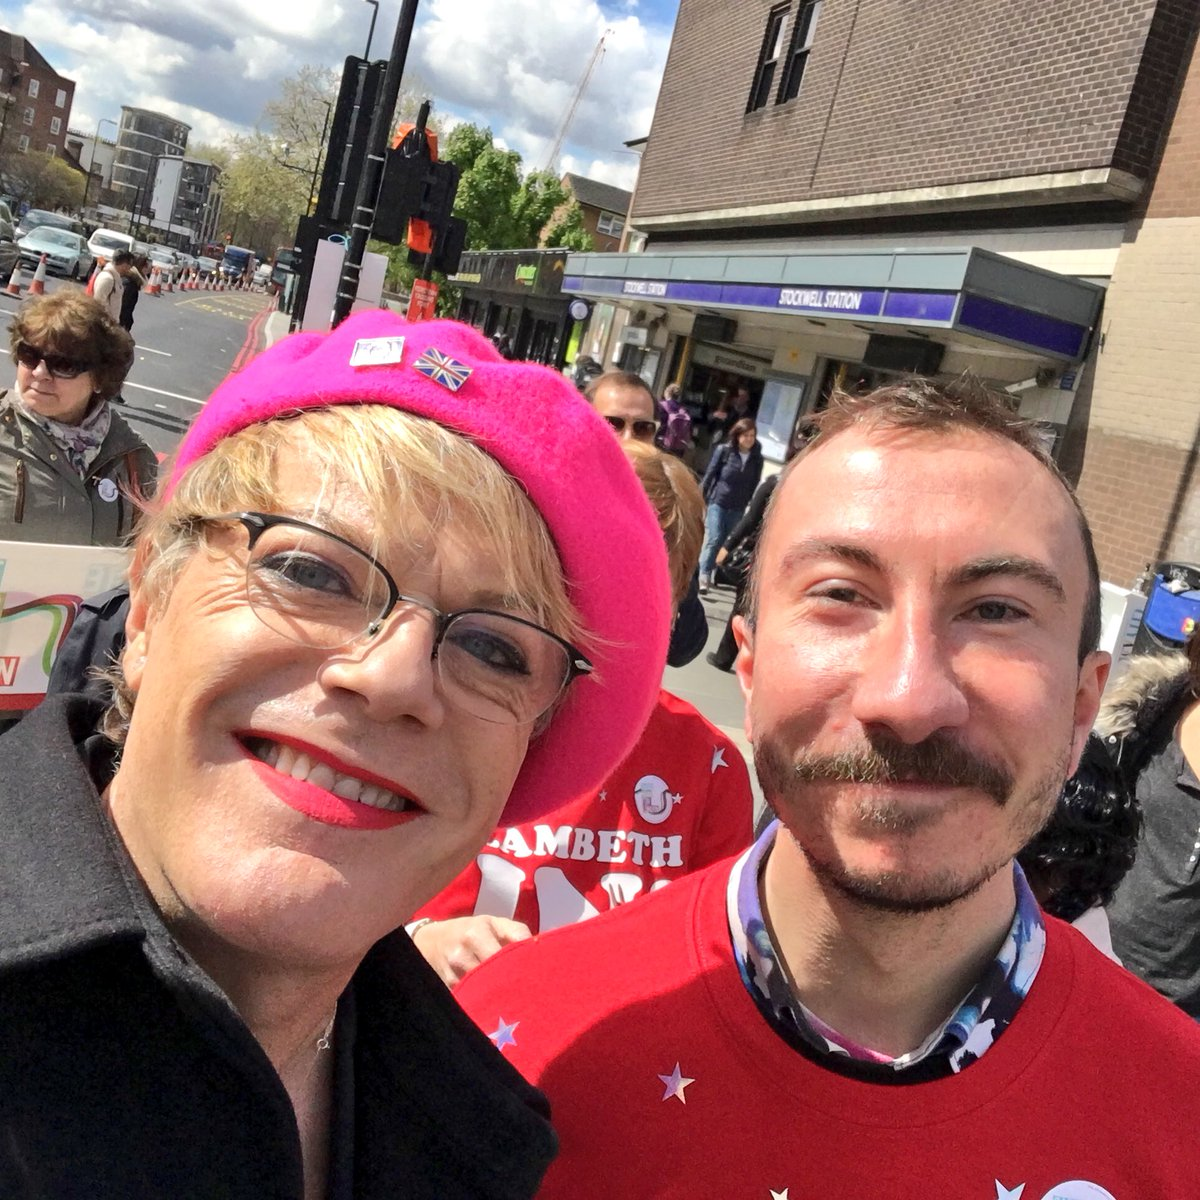 Out in Stockwell with @eddieizzard and the sun is shining! #labourdoorstep @VauxhallLabour https://t.co/o602r9Yhky